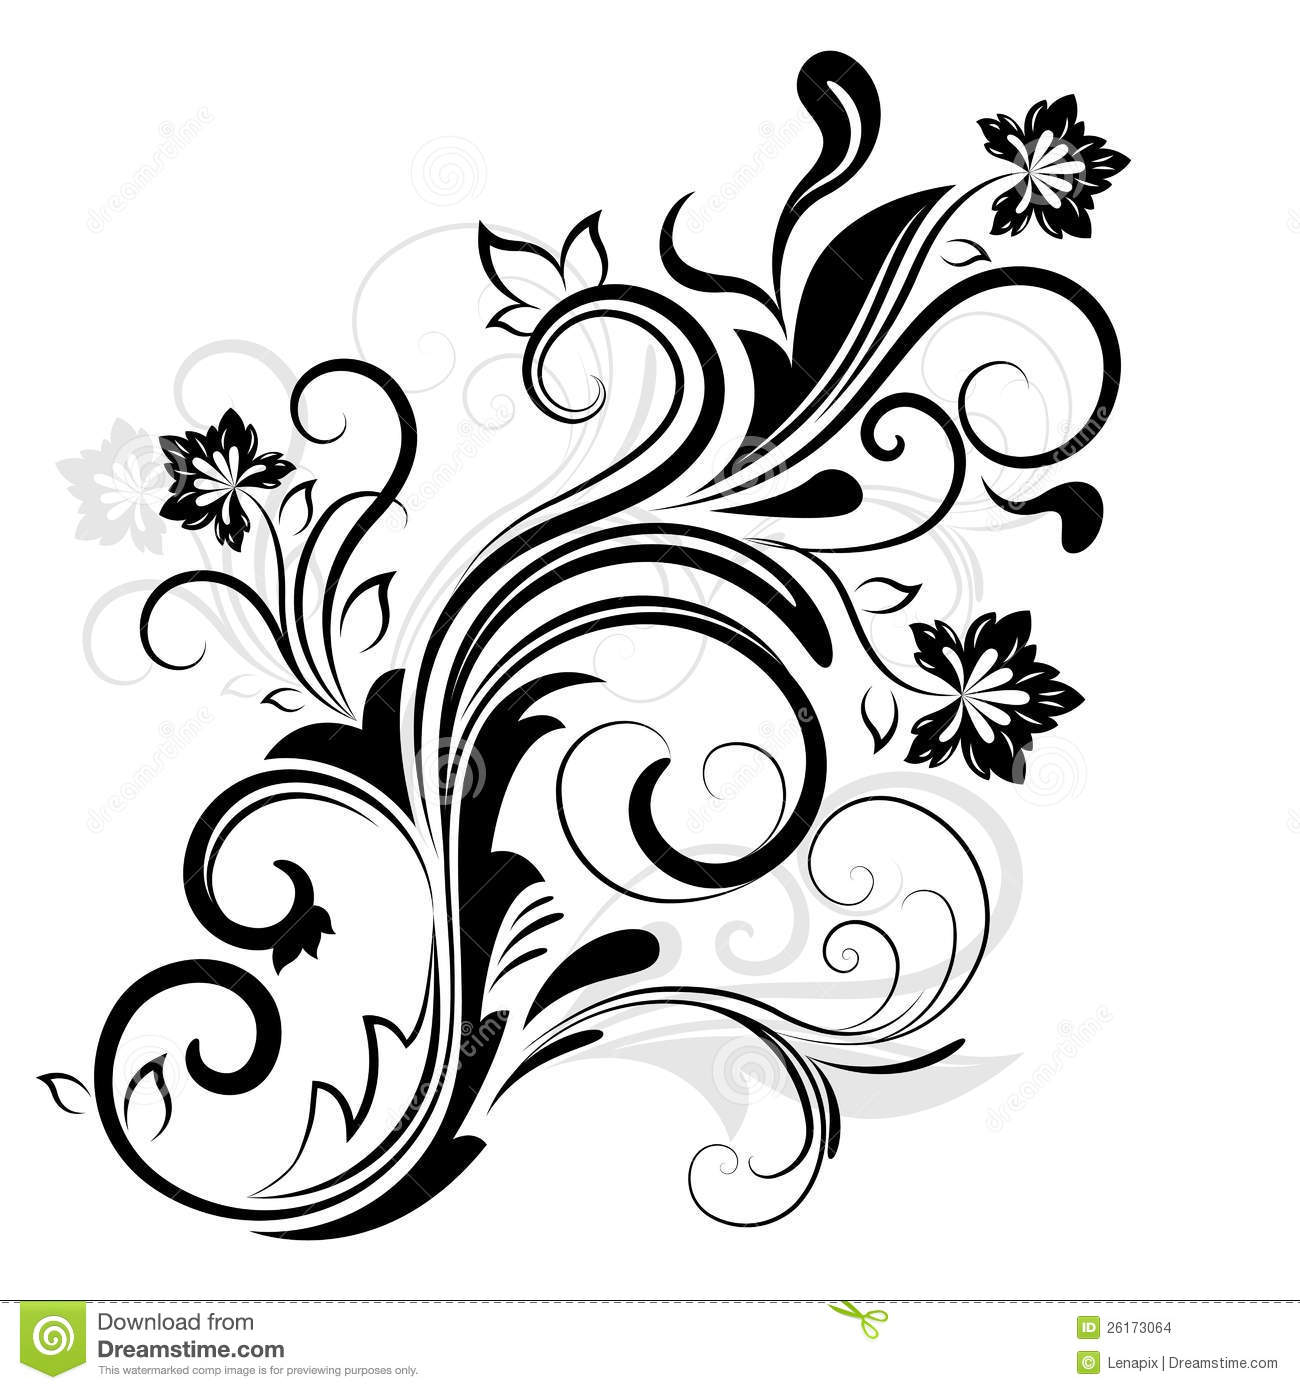 13 Black And White Simple Flower Designs Images - Hibiscus ...